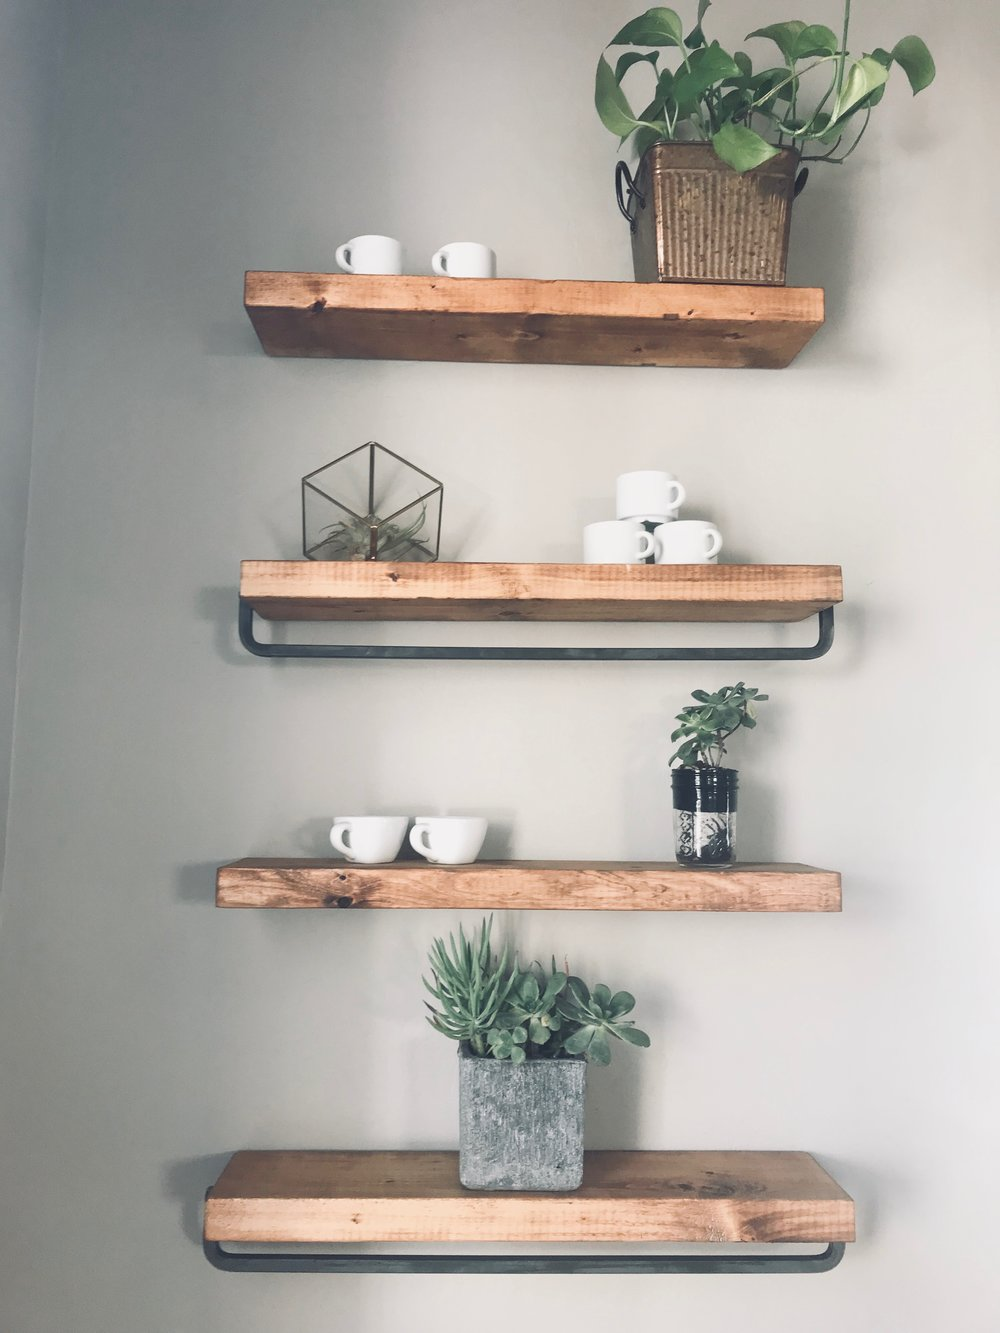 Reclaimed wood floating shelves with metal bars are perfect for displaying coffee for sale and this by far is my favorite wall treatment in the space.